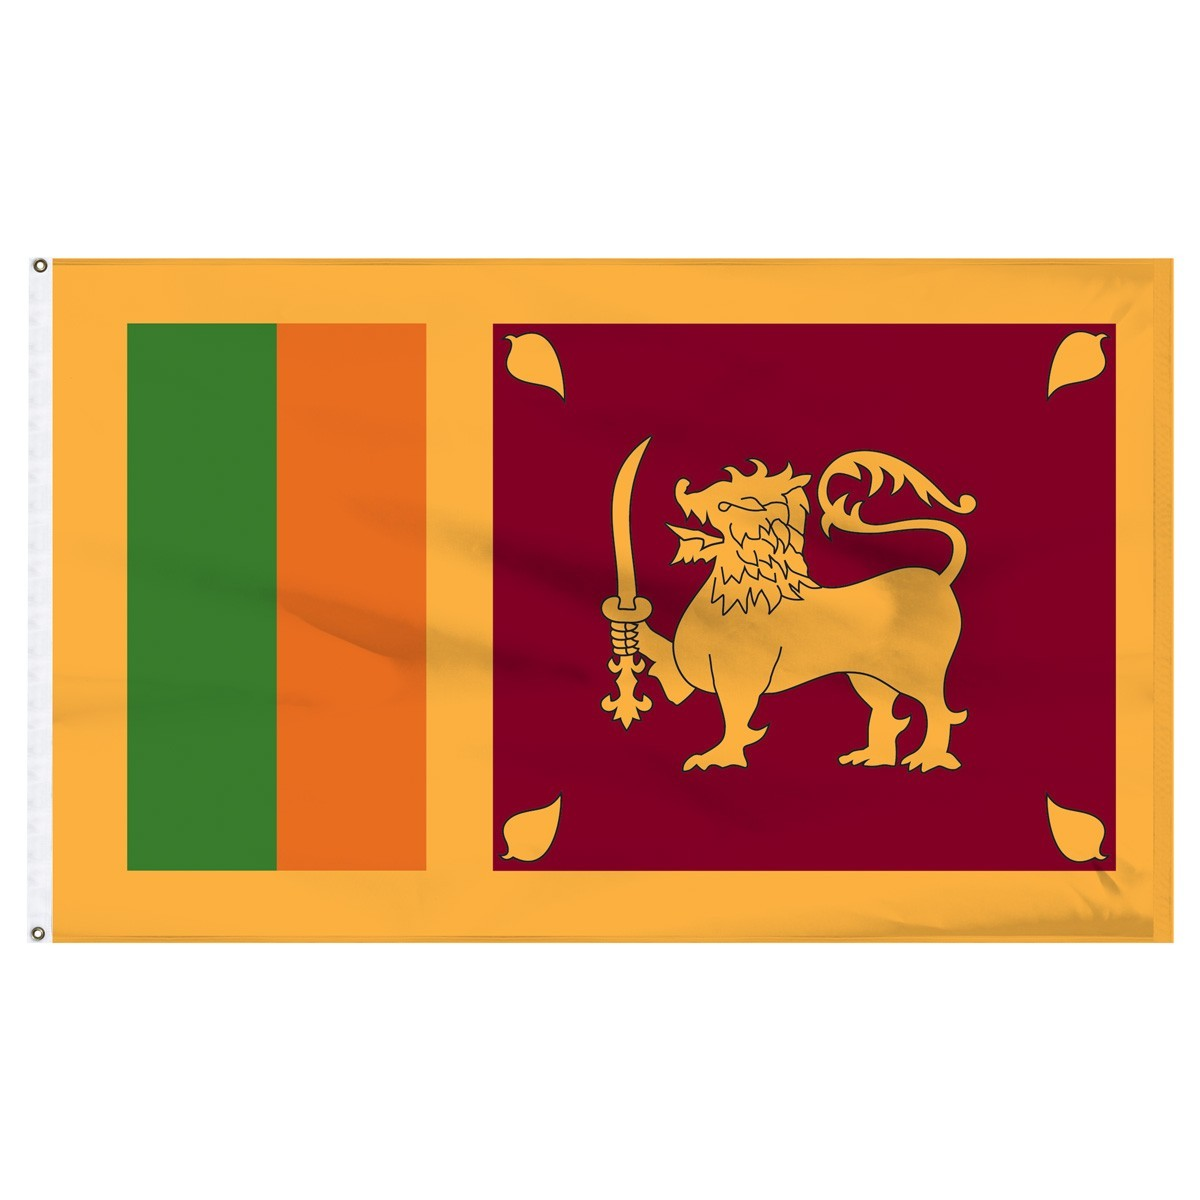 Sri Lanka 2' x 3' Outdoor Nylon Flag